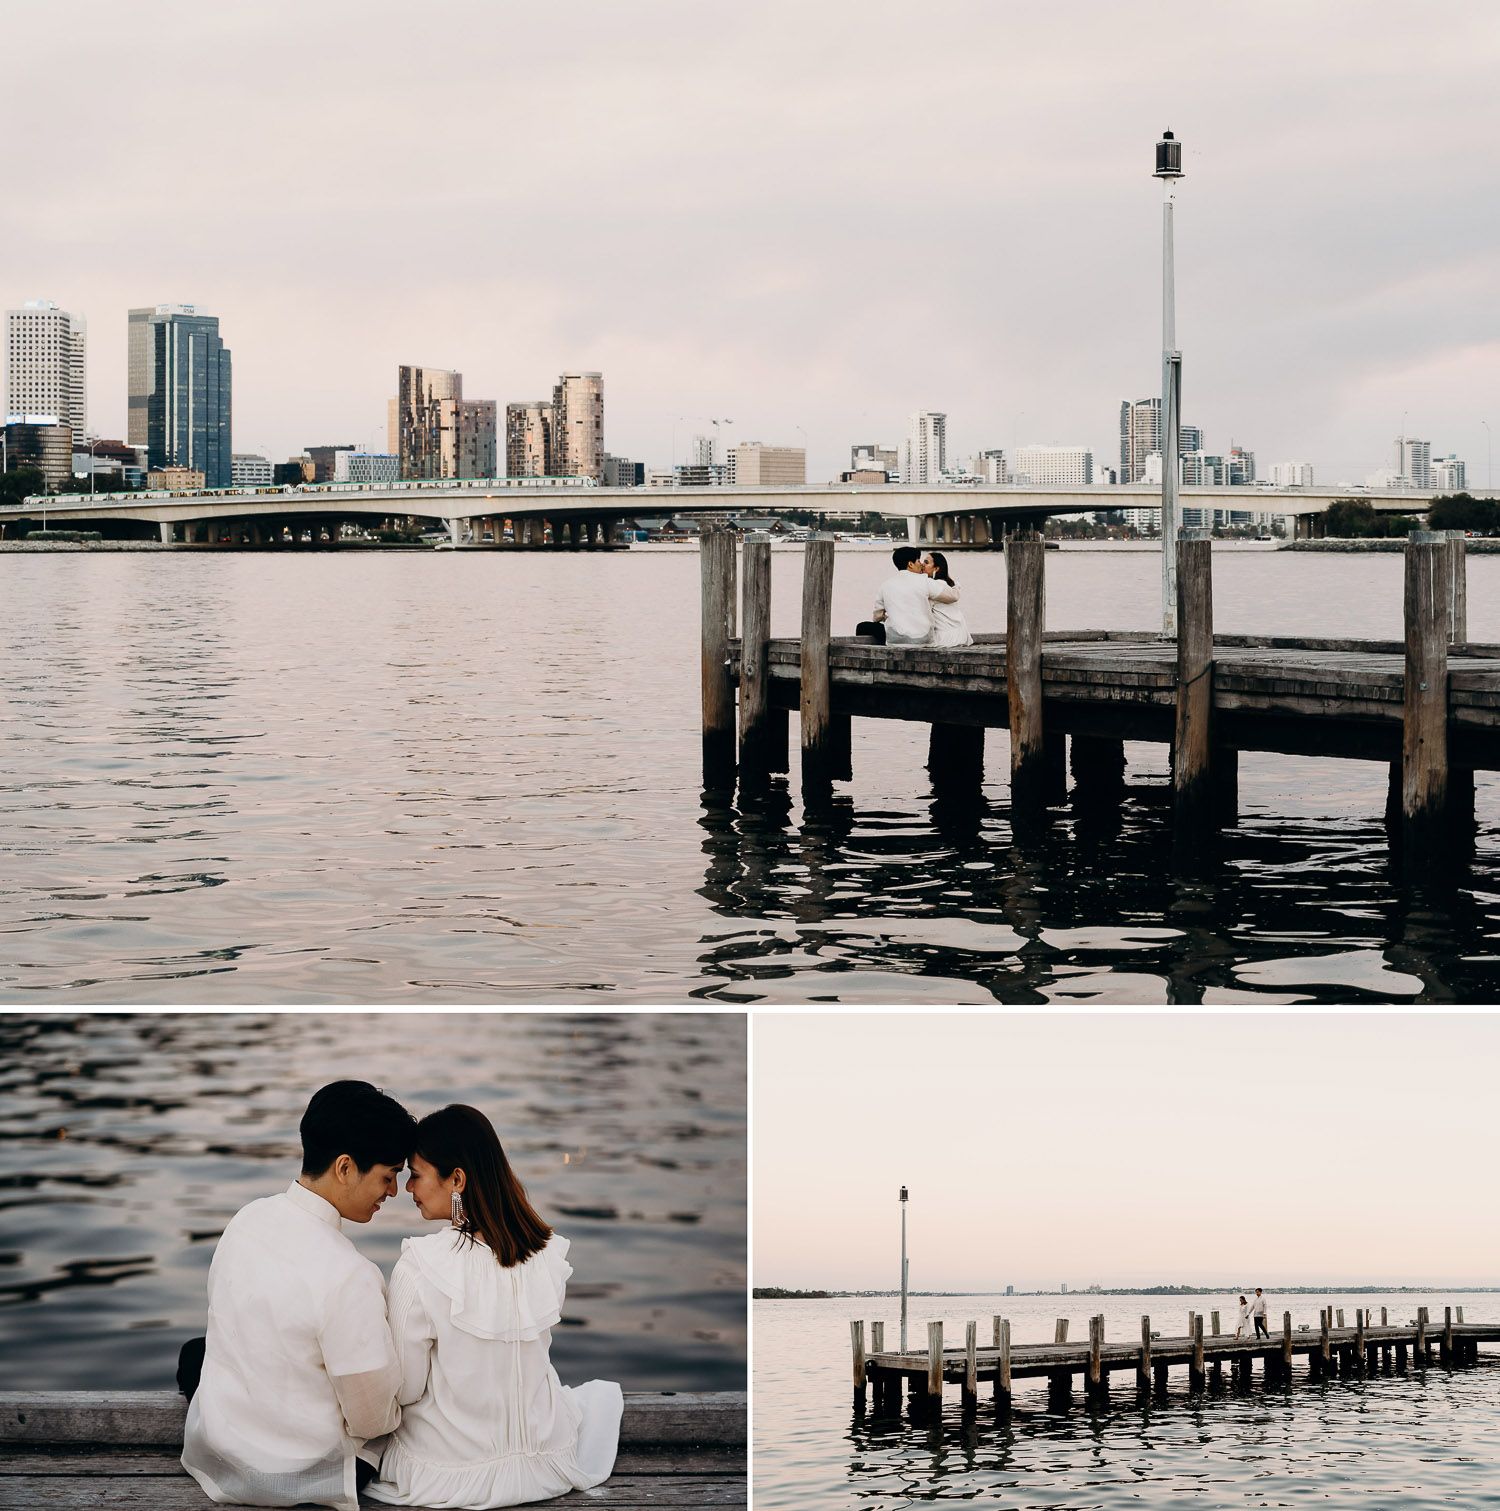 Couple photoshoot at jetty, casual prewed and engagement shoot at jetty, couple sitting on jetty, couple sitting by the water, couple kissing near the water, couple kissing on the jetty, couple photoshoot in perth jetty, photoshoot at jetty overlooking water, jetty with buildings